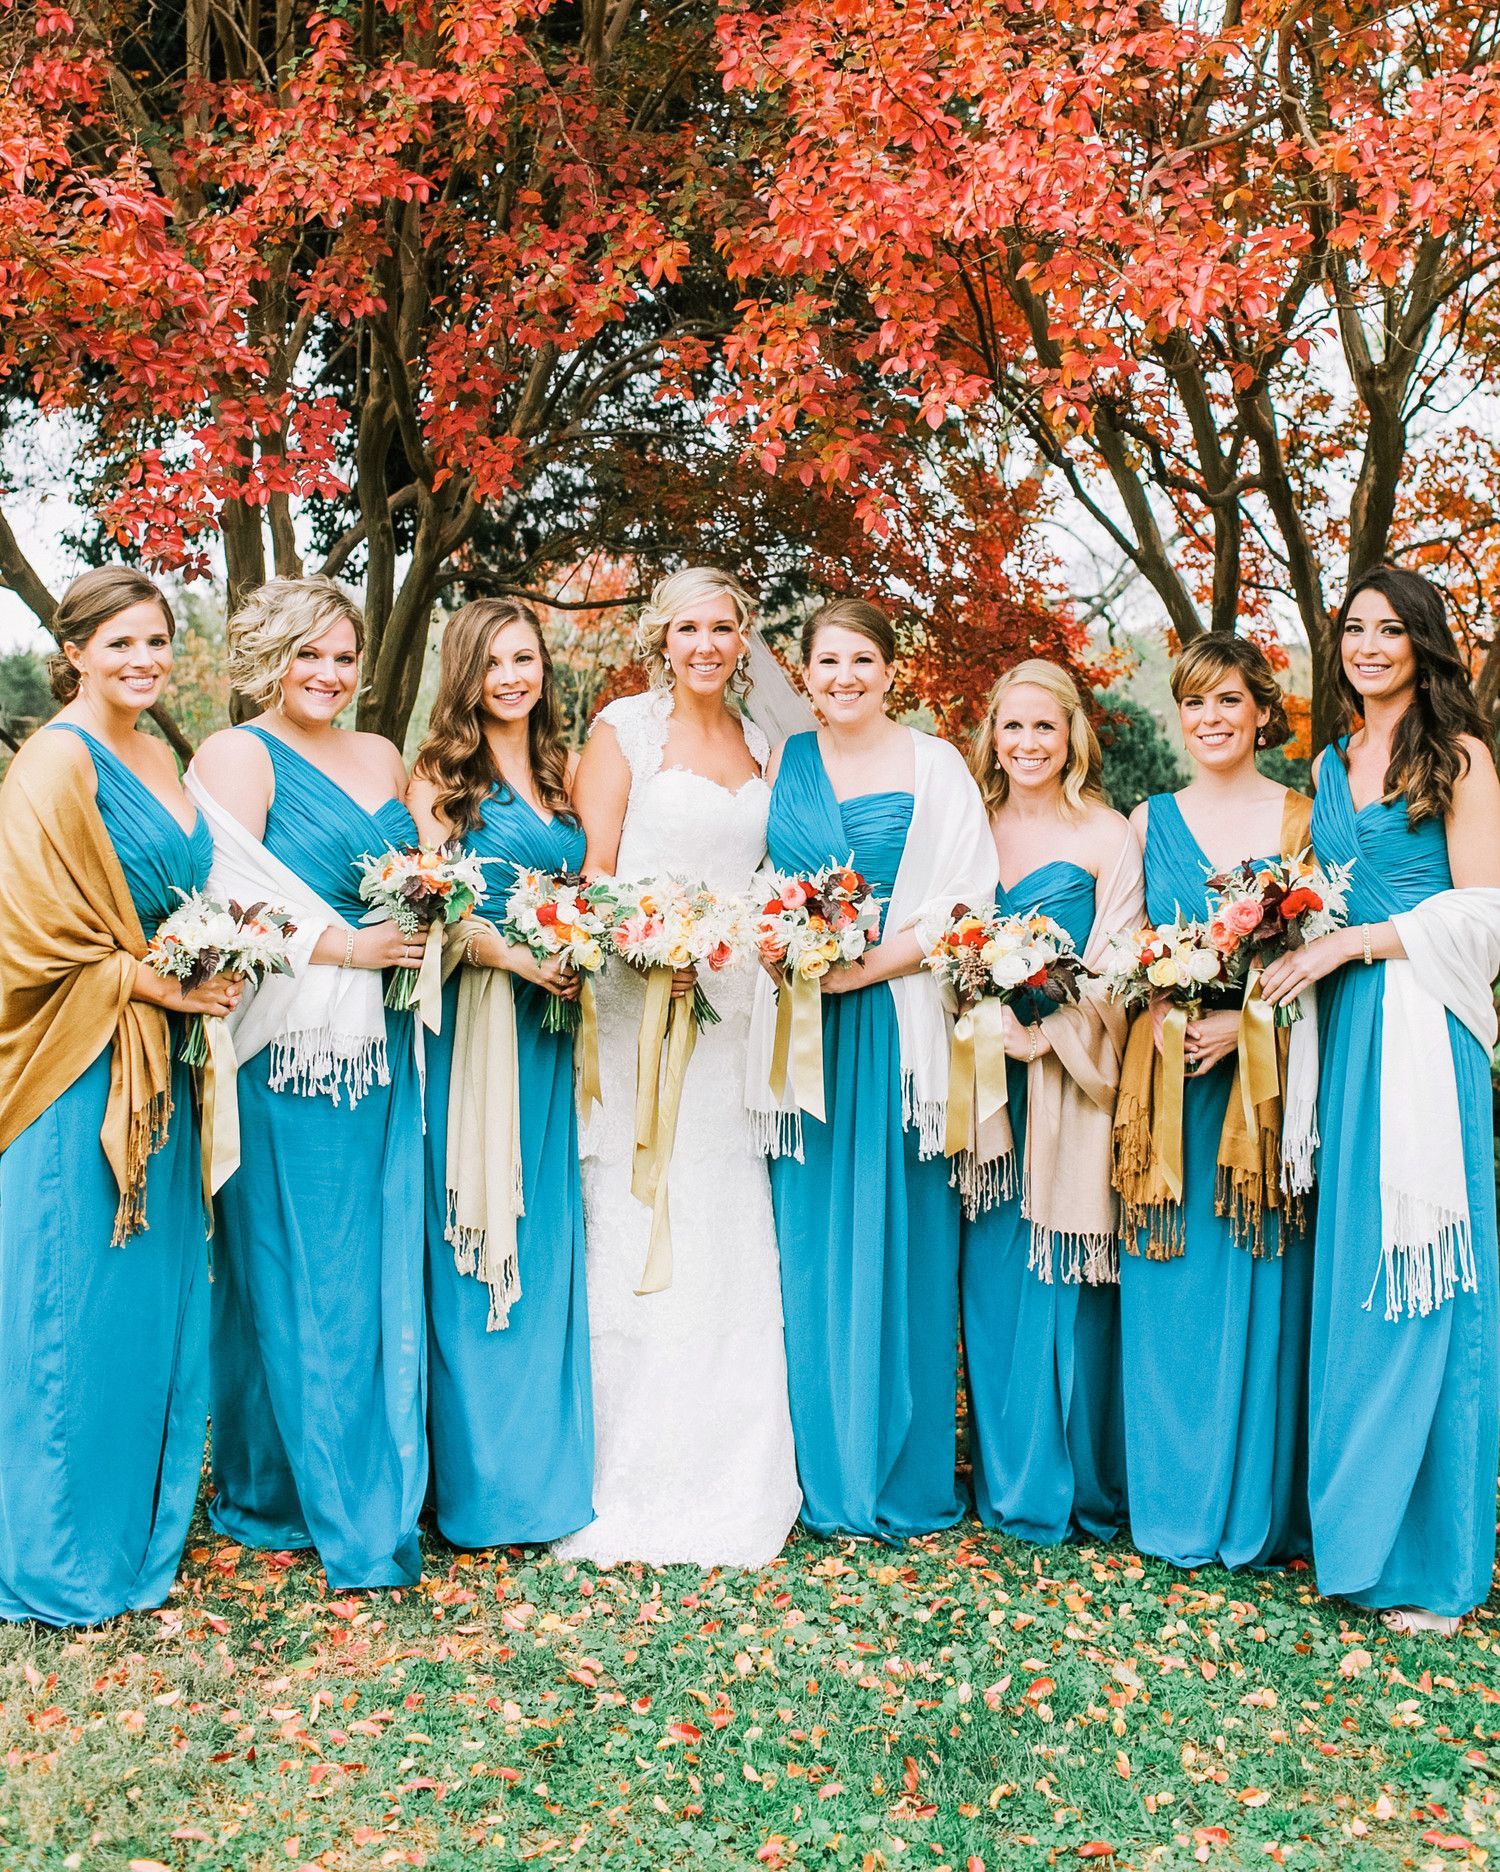 Known Since Elementary And Middle School To Serve As Her Bridesmaids Best Friend Sixth Grade Also Named Brittany Was The Maid Of Honor